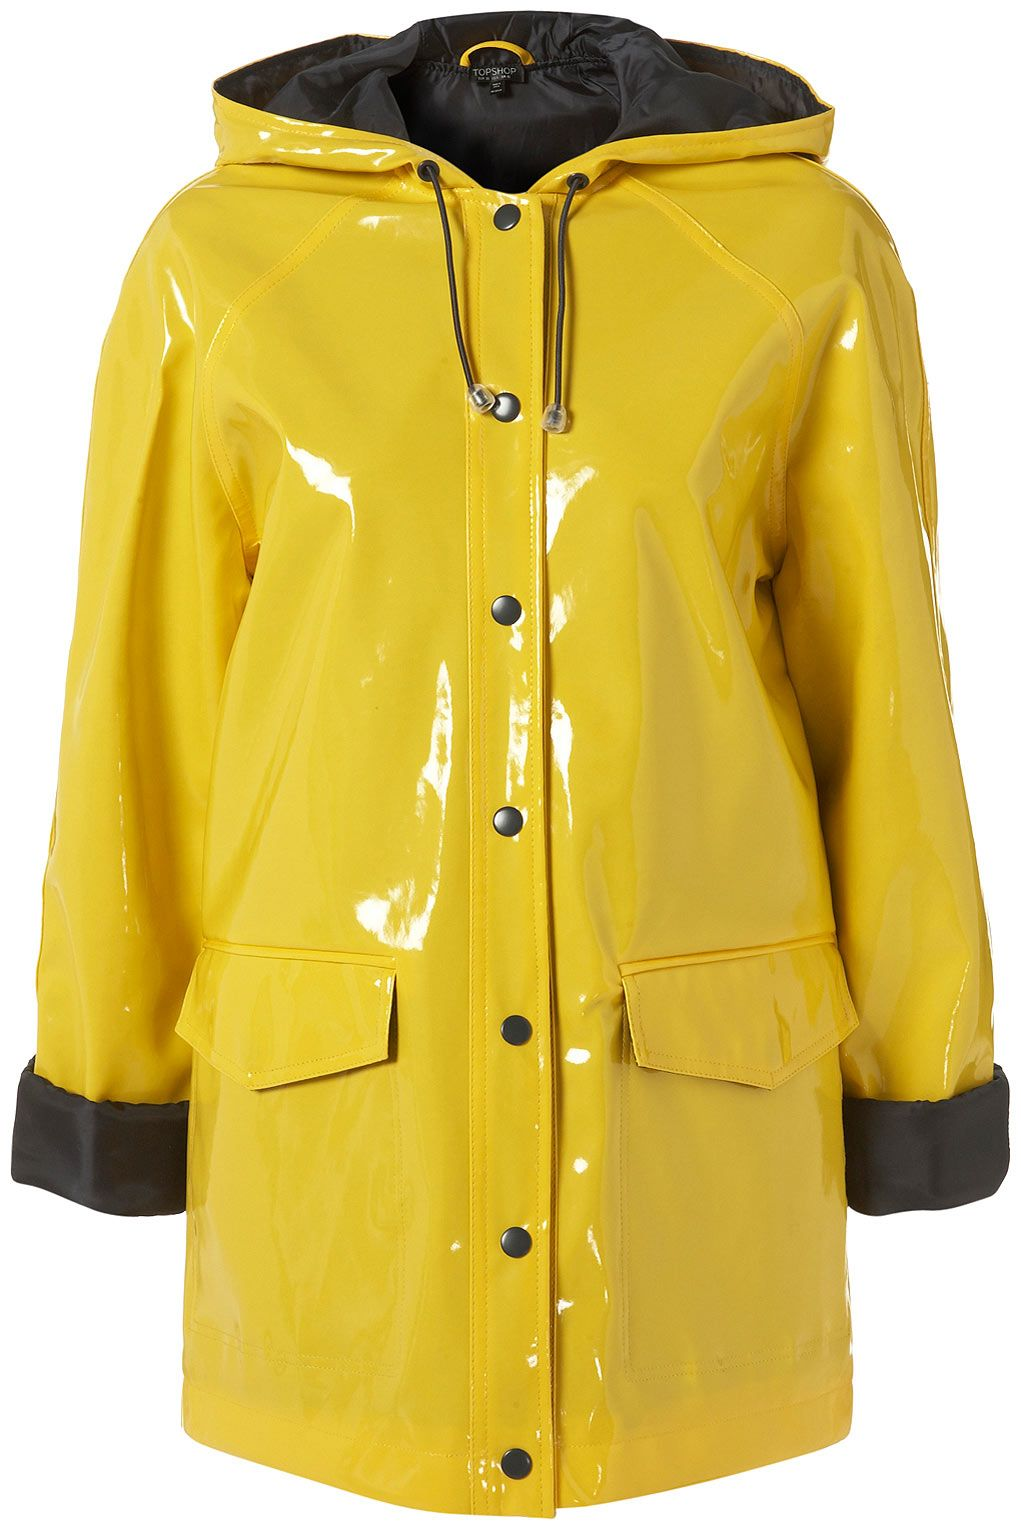 yellow vinyl raincoat | I remember ... | Pinterest | Vinyls ...